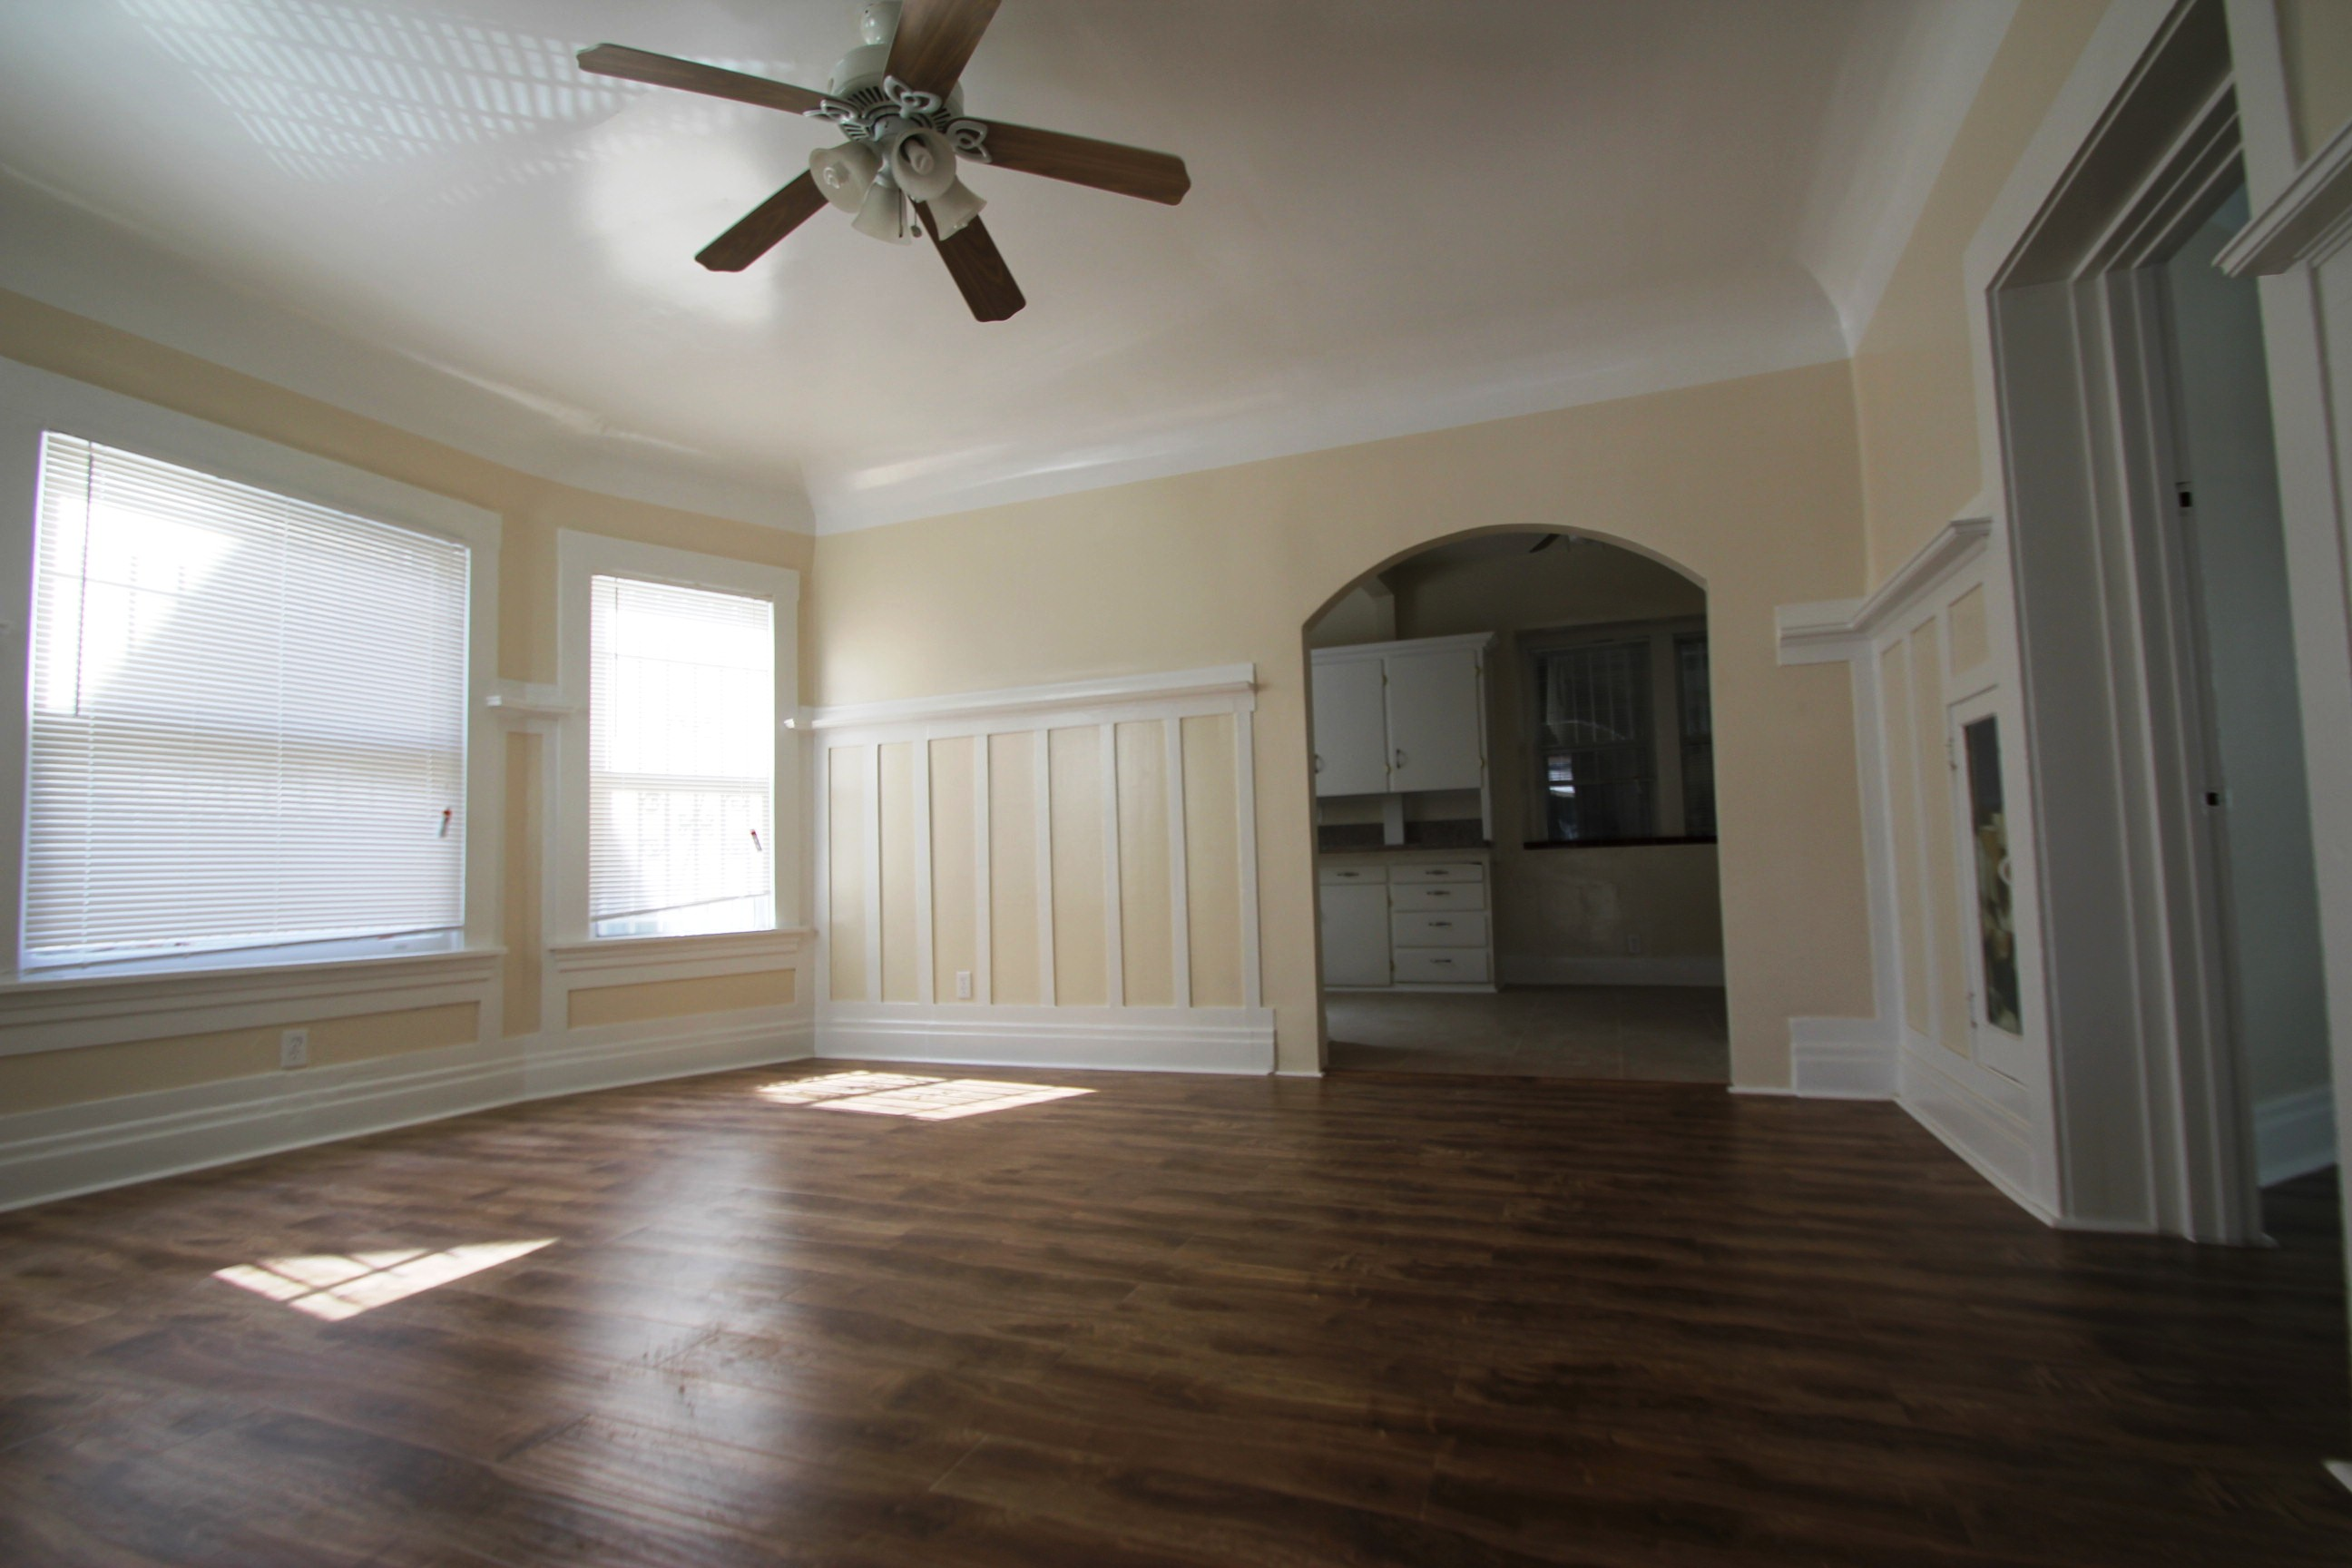 1176 37th st, los angeles, California 90007, 2 Bedrooms Bedrooms, ,2 BathroomsBathrooms,Apartment,For Rent,37th st,1,1032